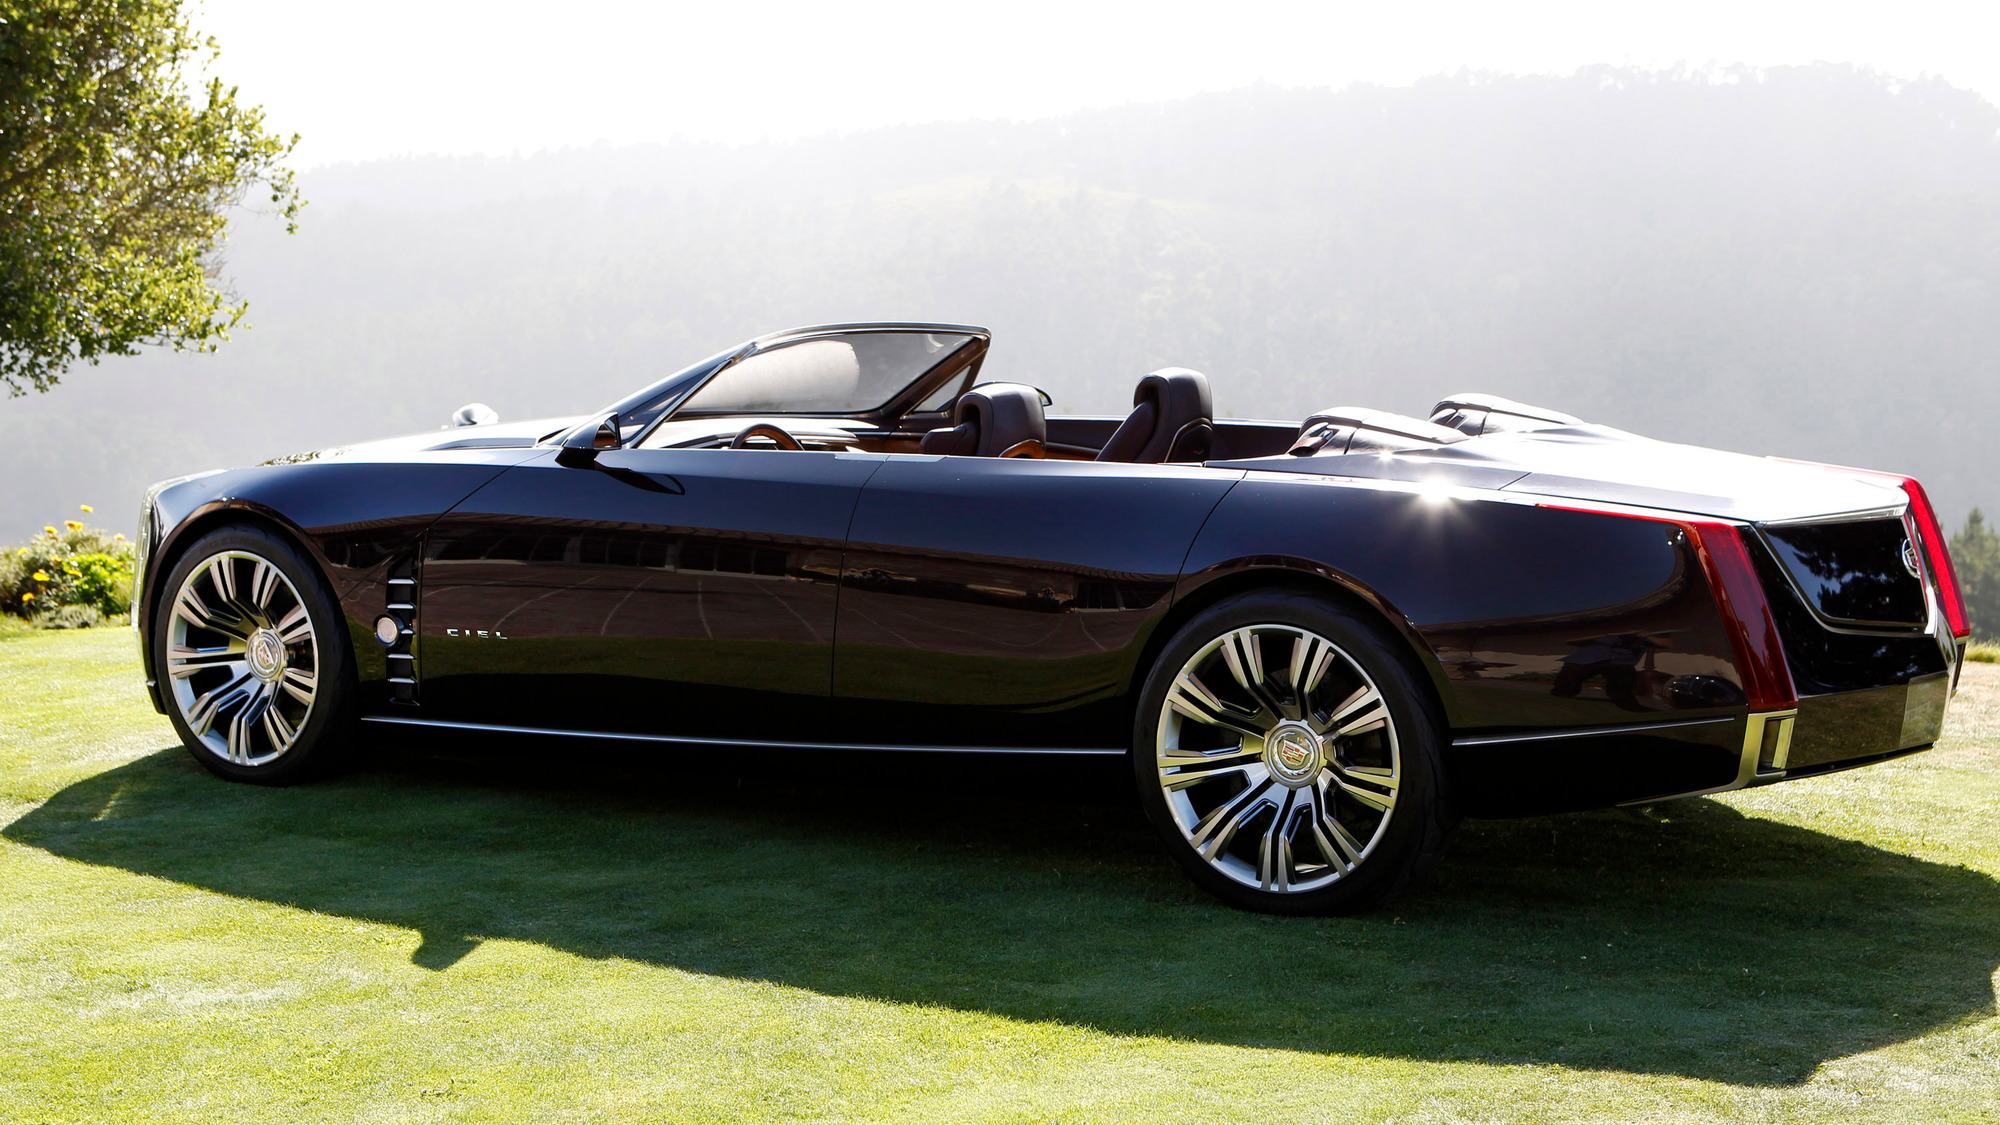 Cadillac Ciel Four Seat Convertible Concept Launch In Carmel California Aug 2017